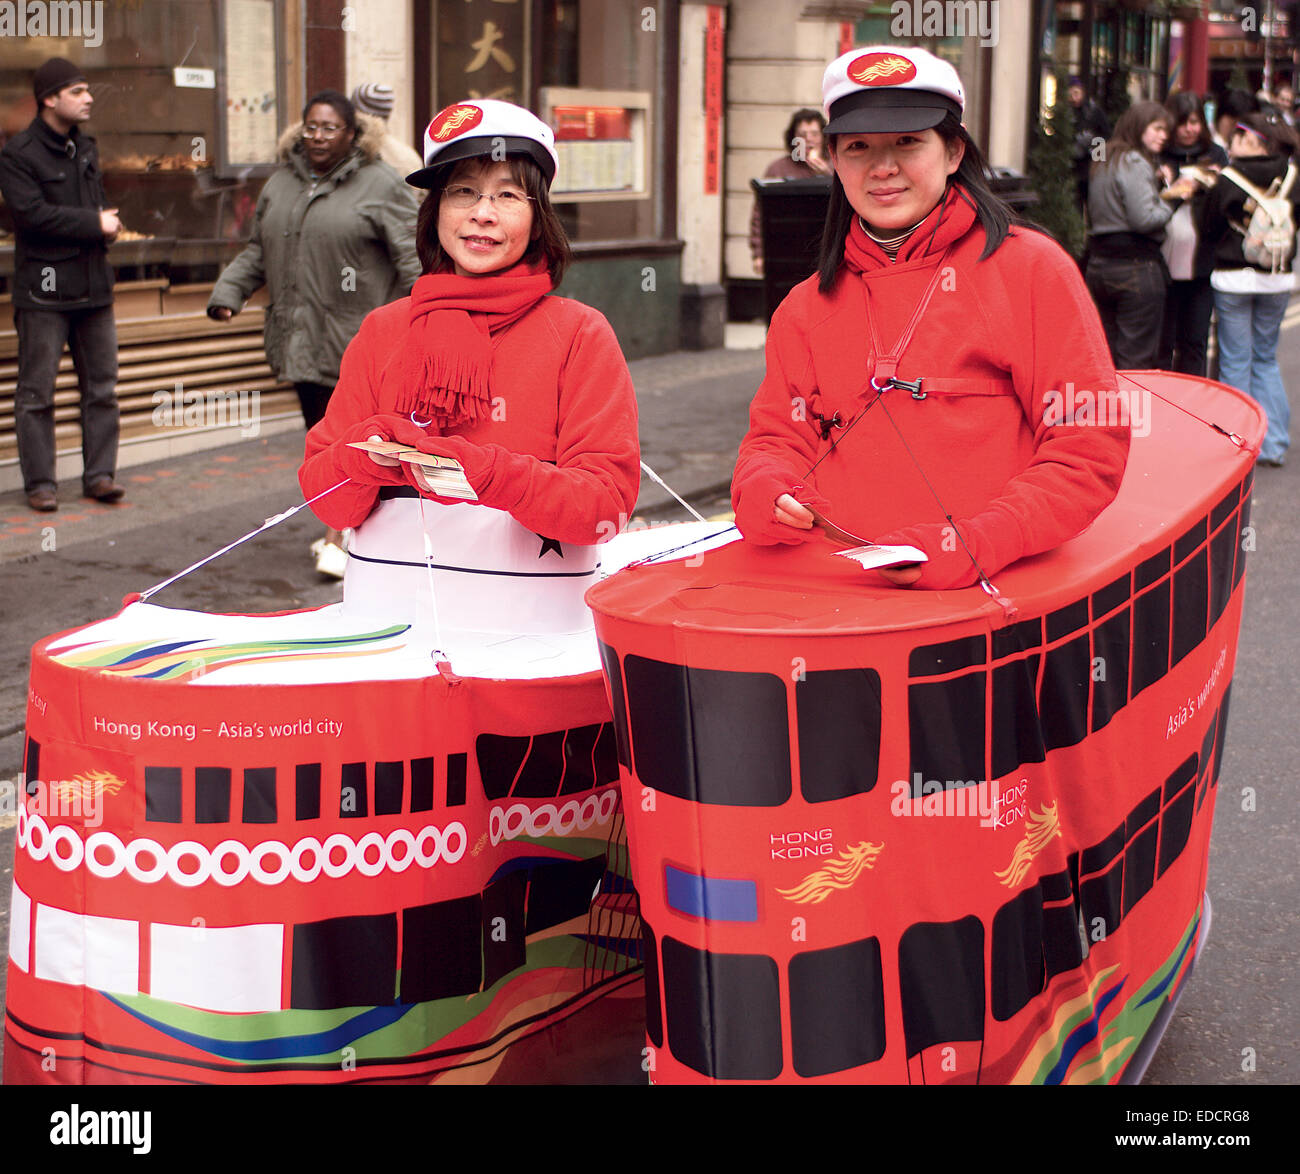 Two ladies promote Hong Kong in London's Chinatown during the Chinese New Year celebrations. - Stock Image